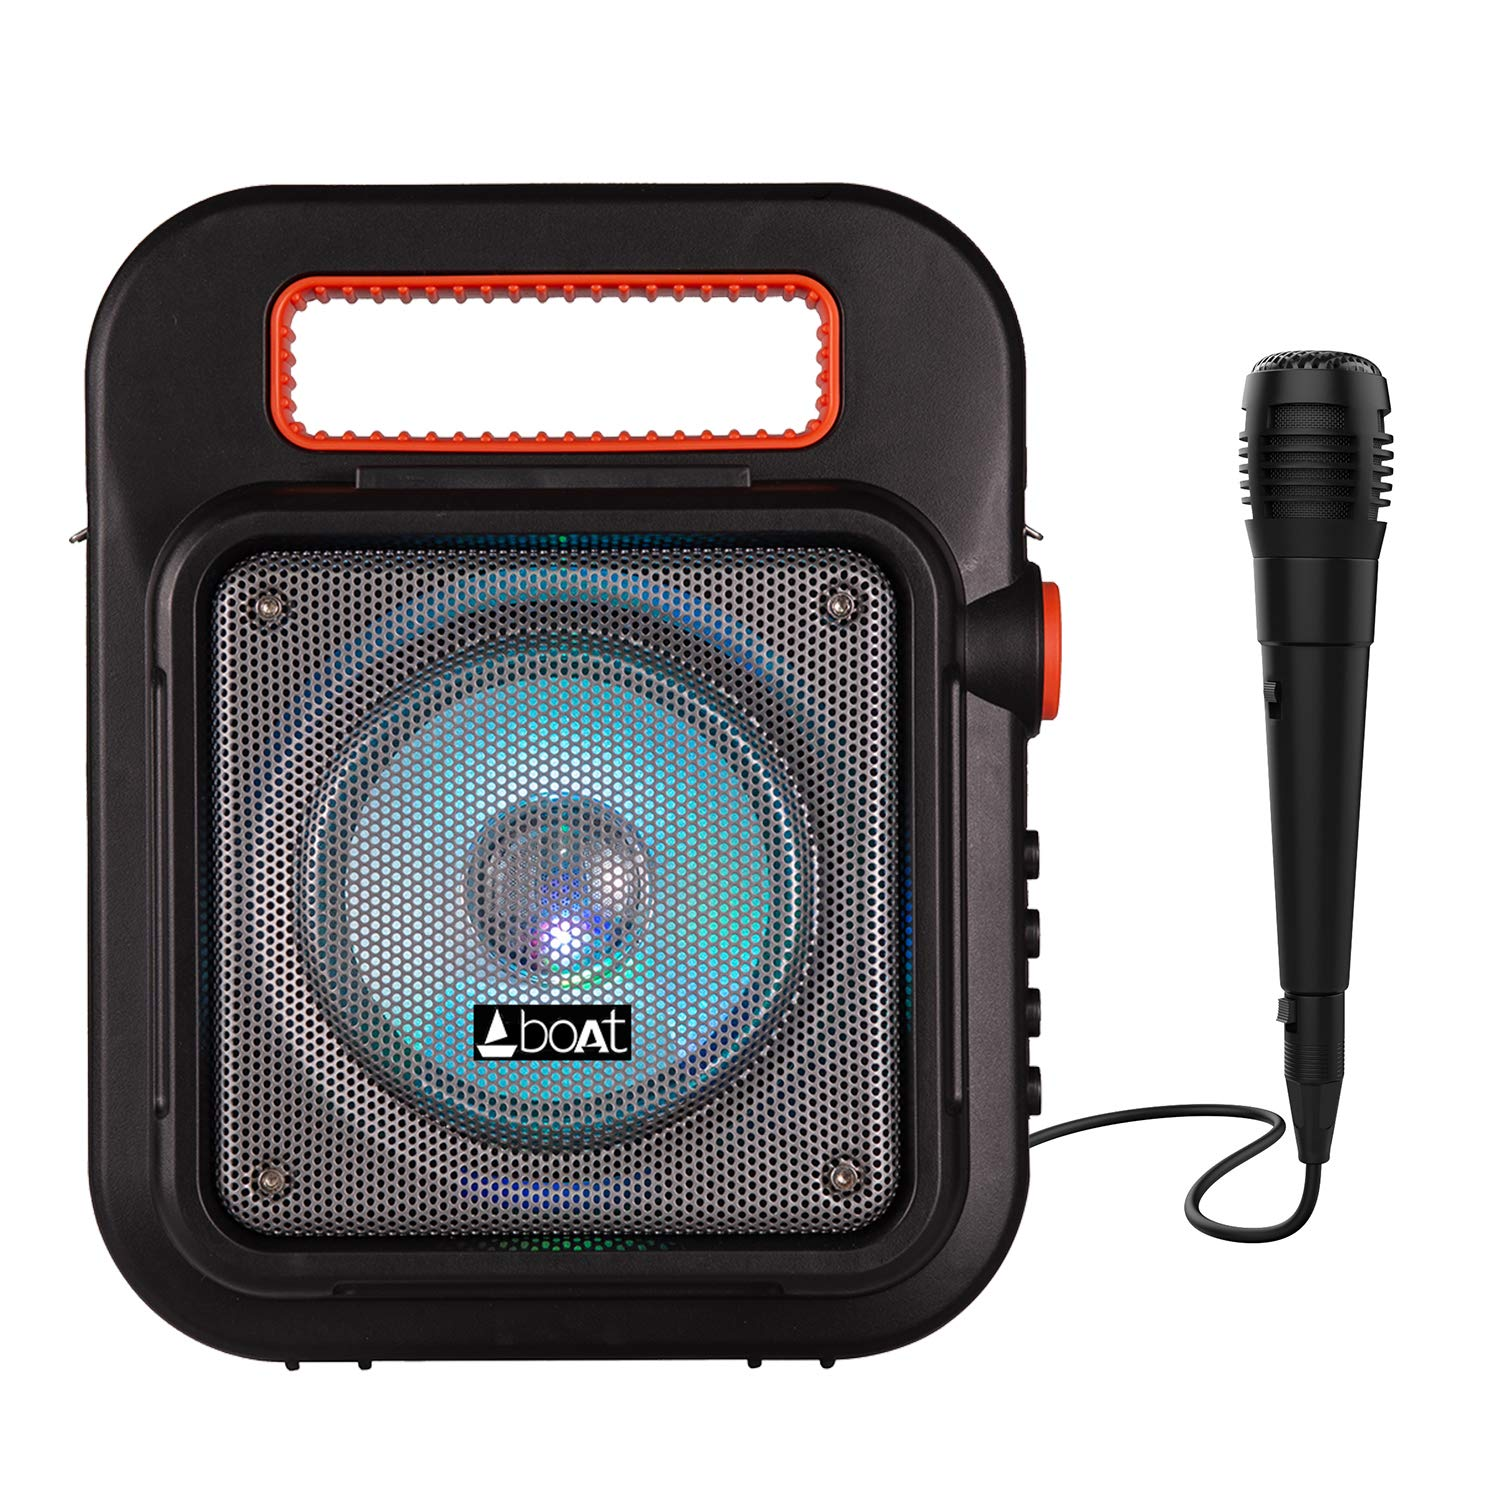 Boat Bluetoth Speaker Parypal 20 with mic